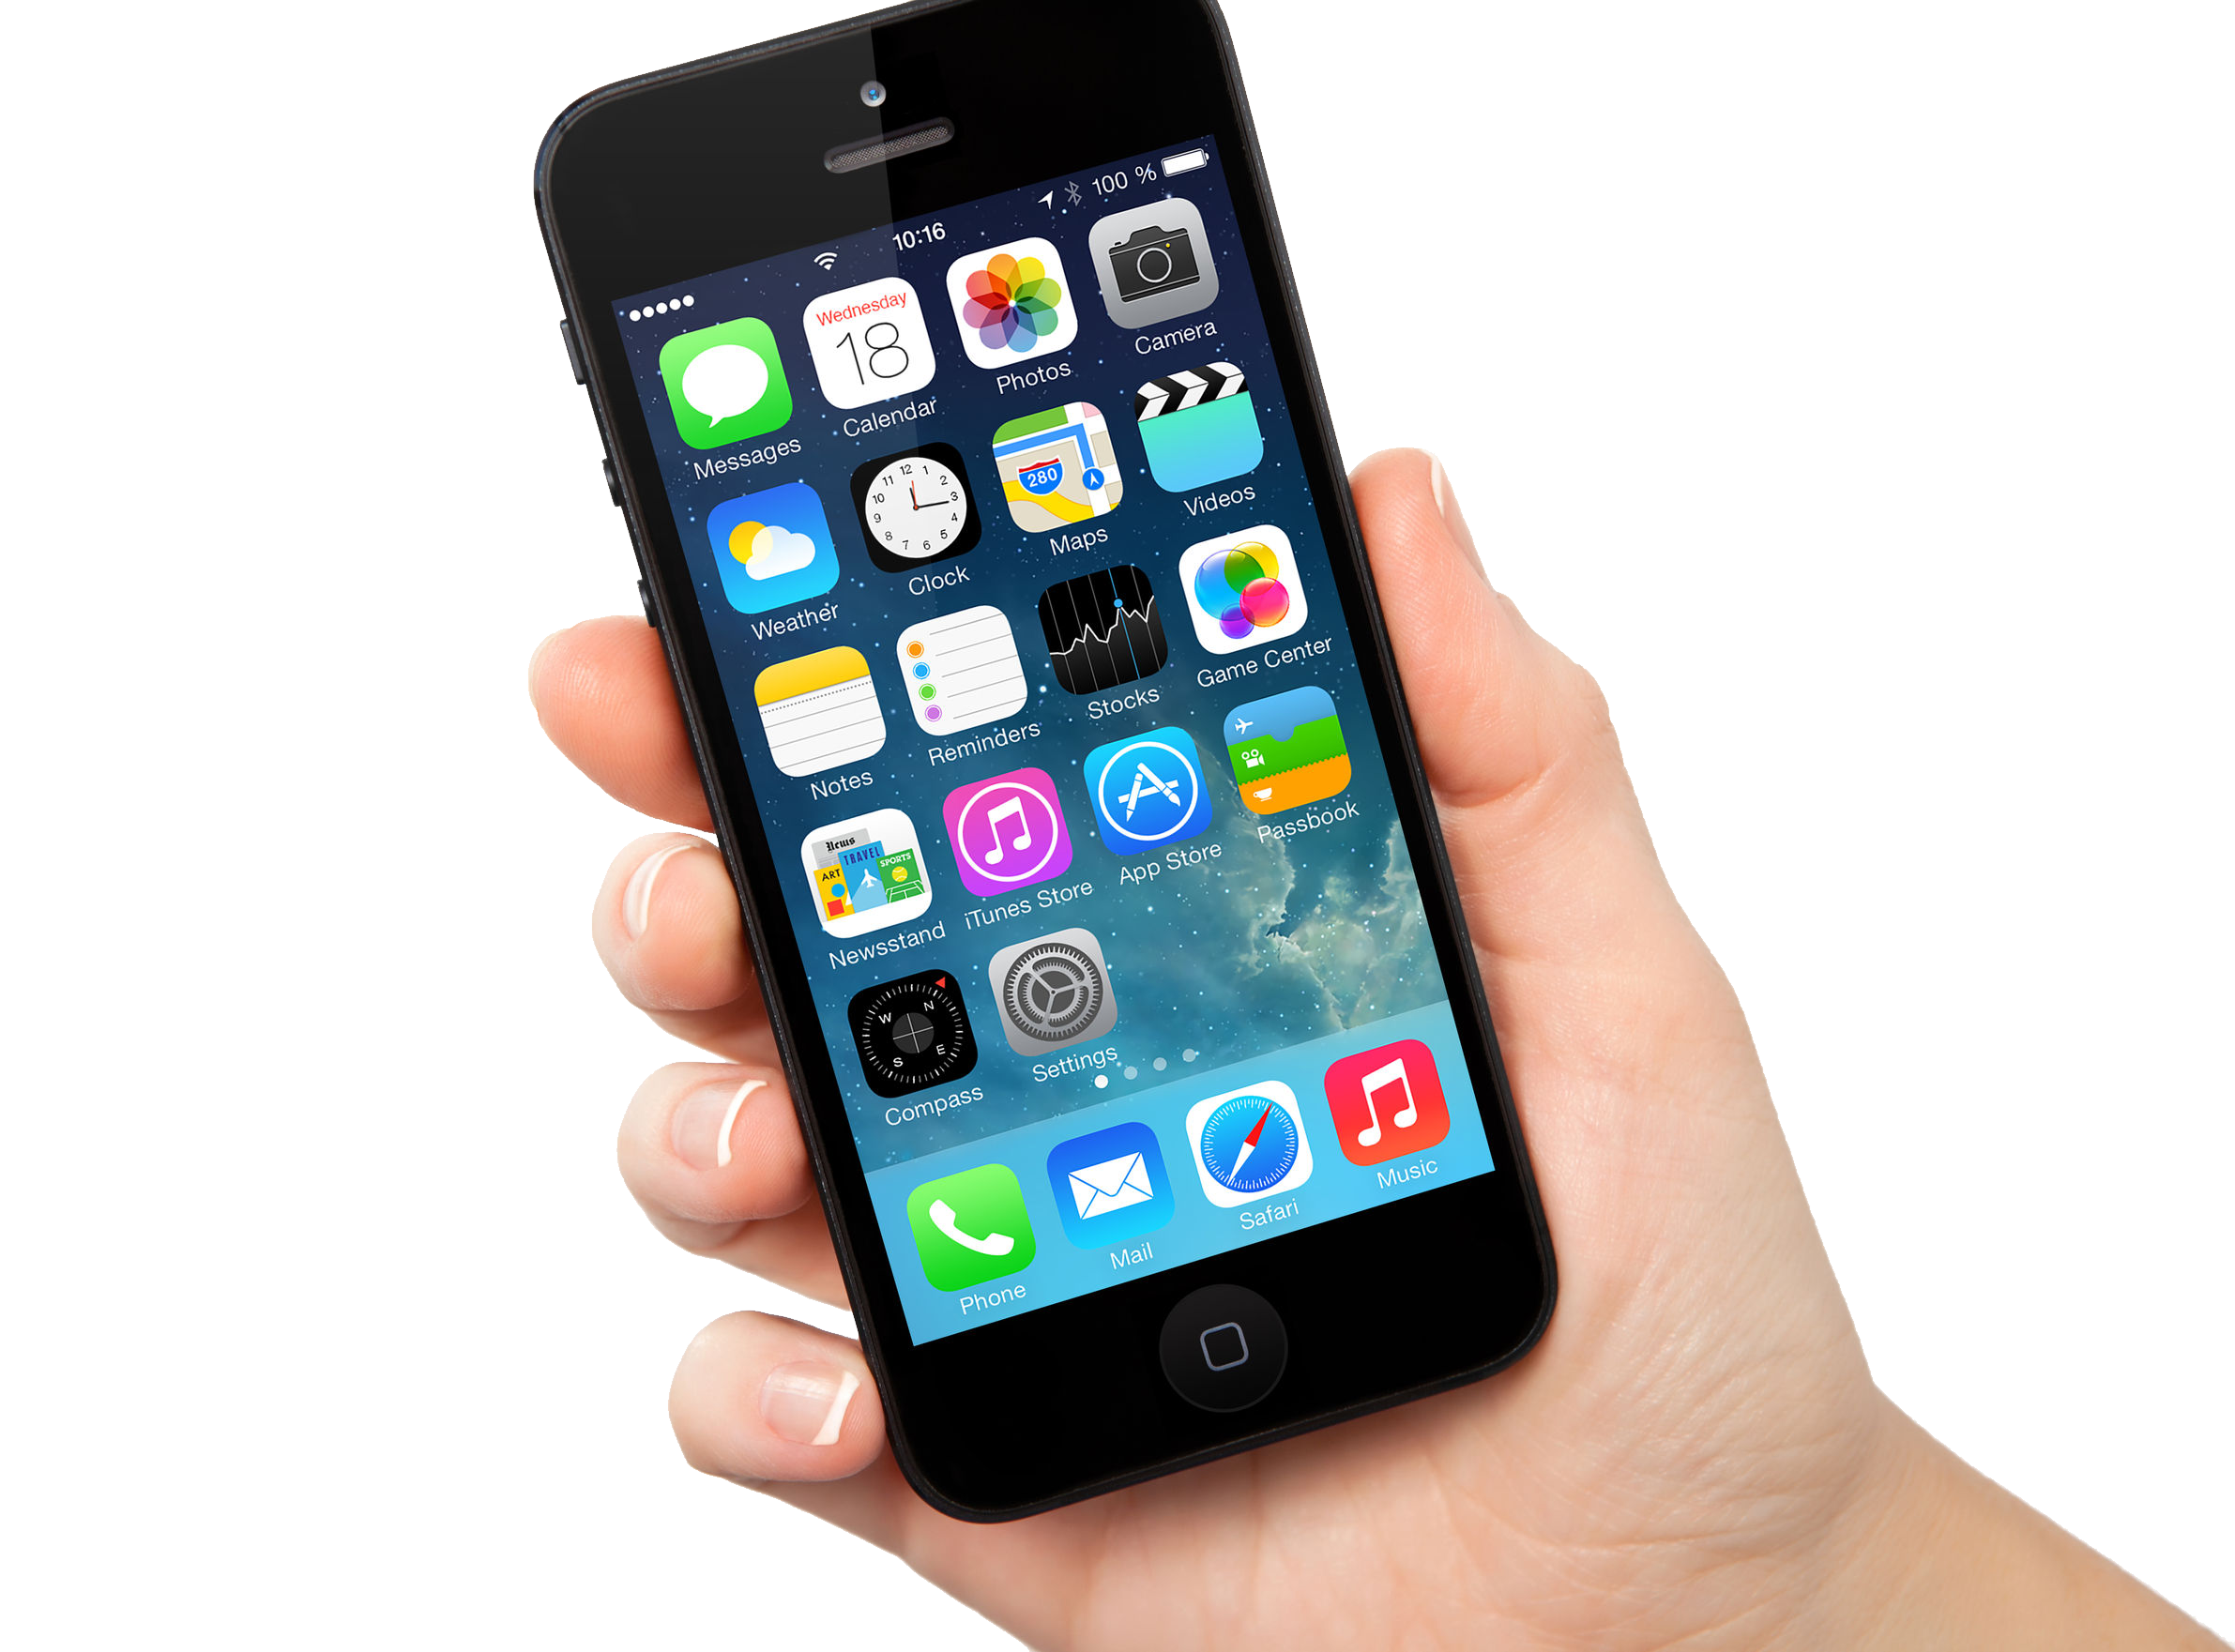 Iphone transparent png. Pictures free icons and